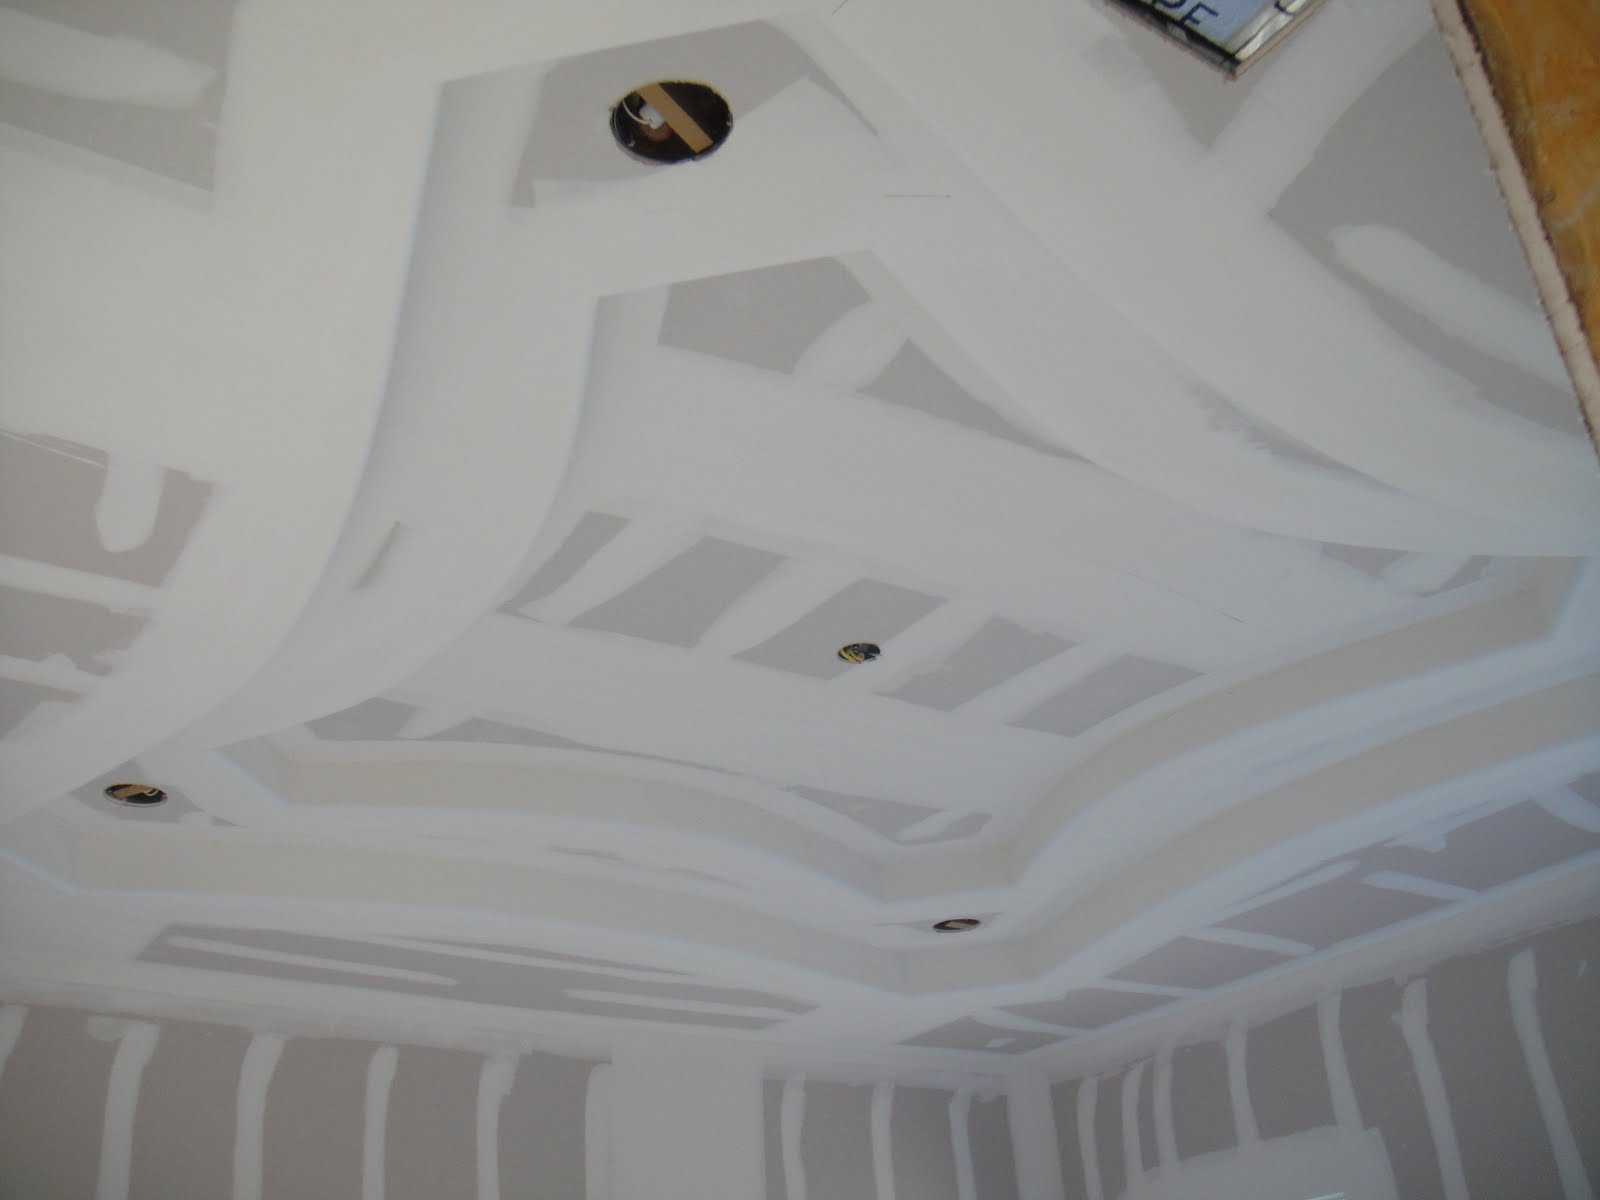 How Use Paper Drywall Tape : Drywall repair instructions using paper tape